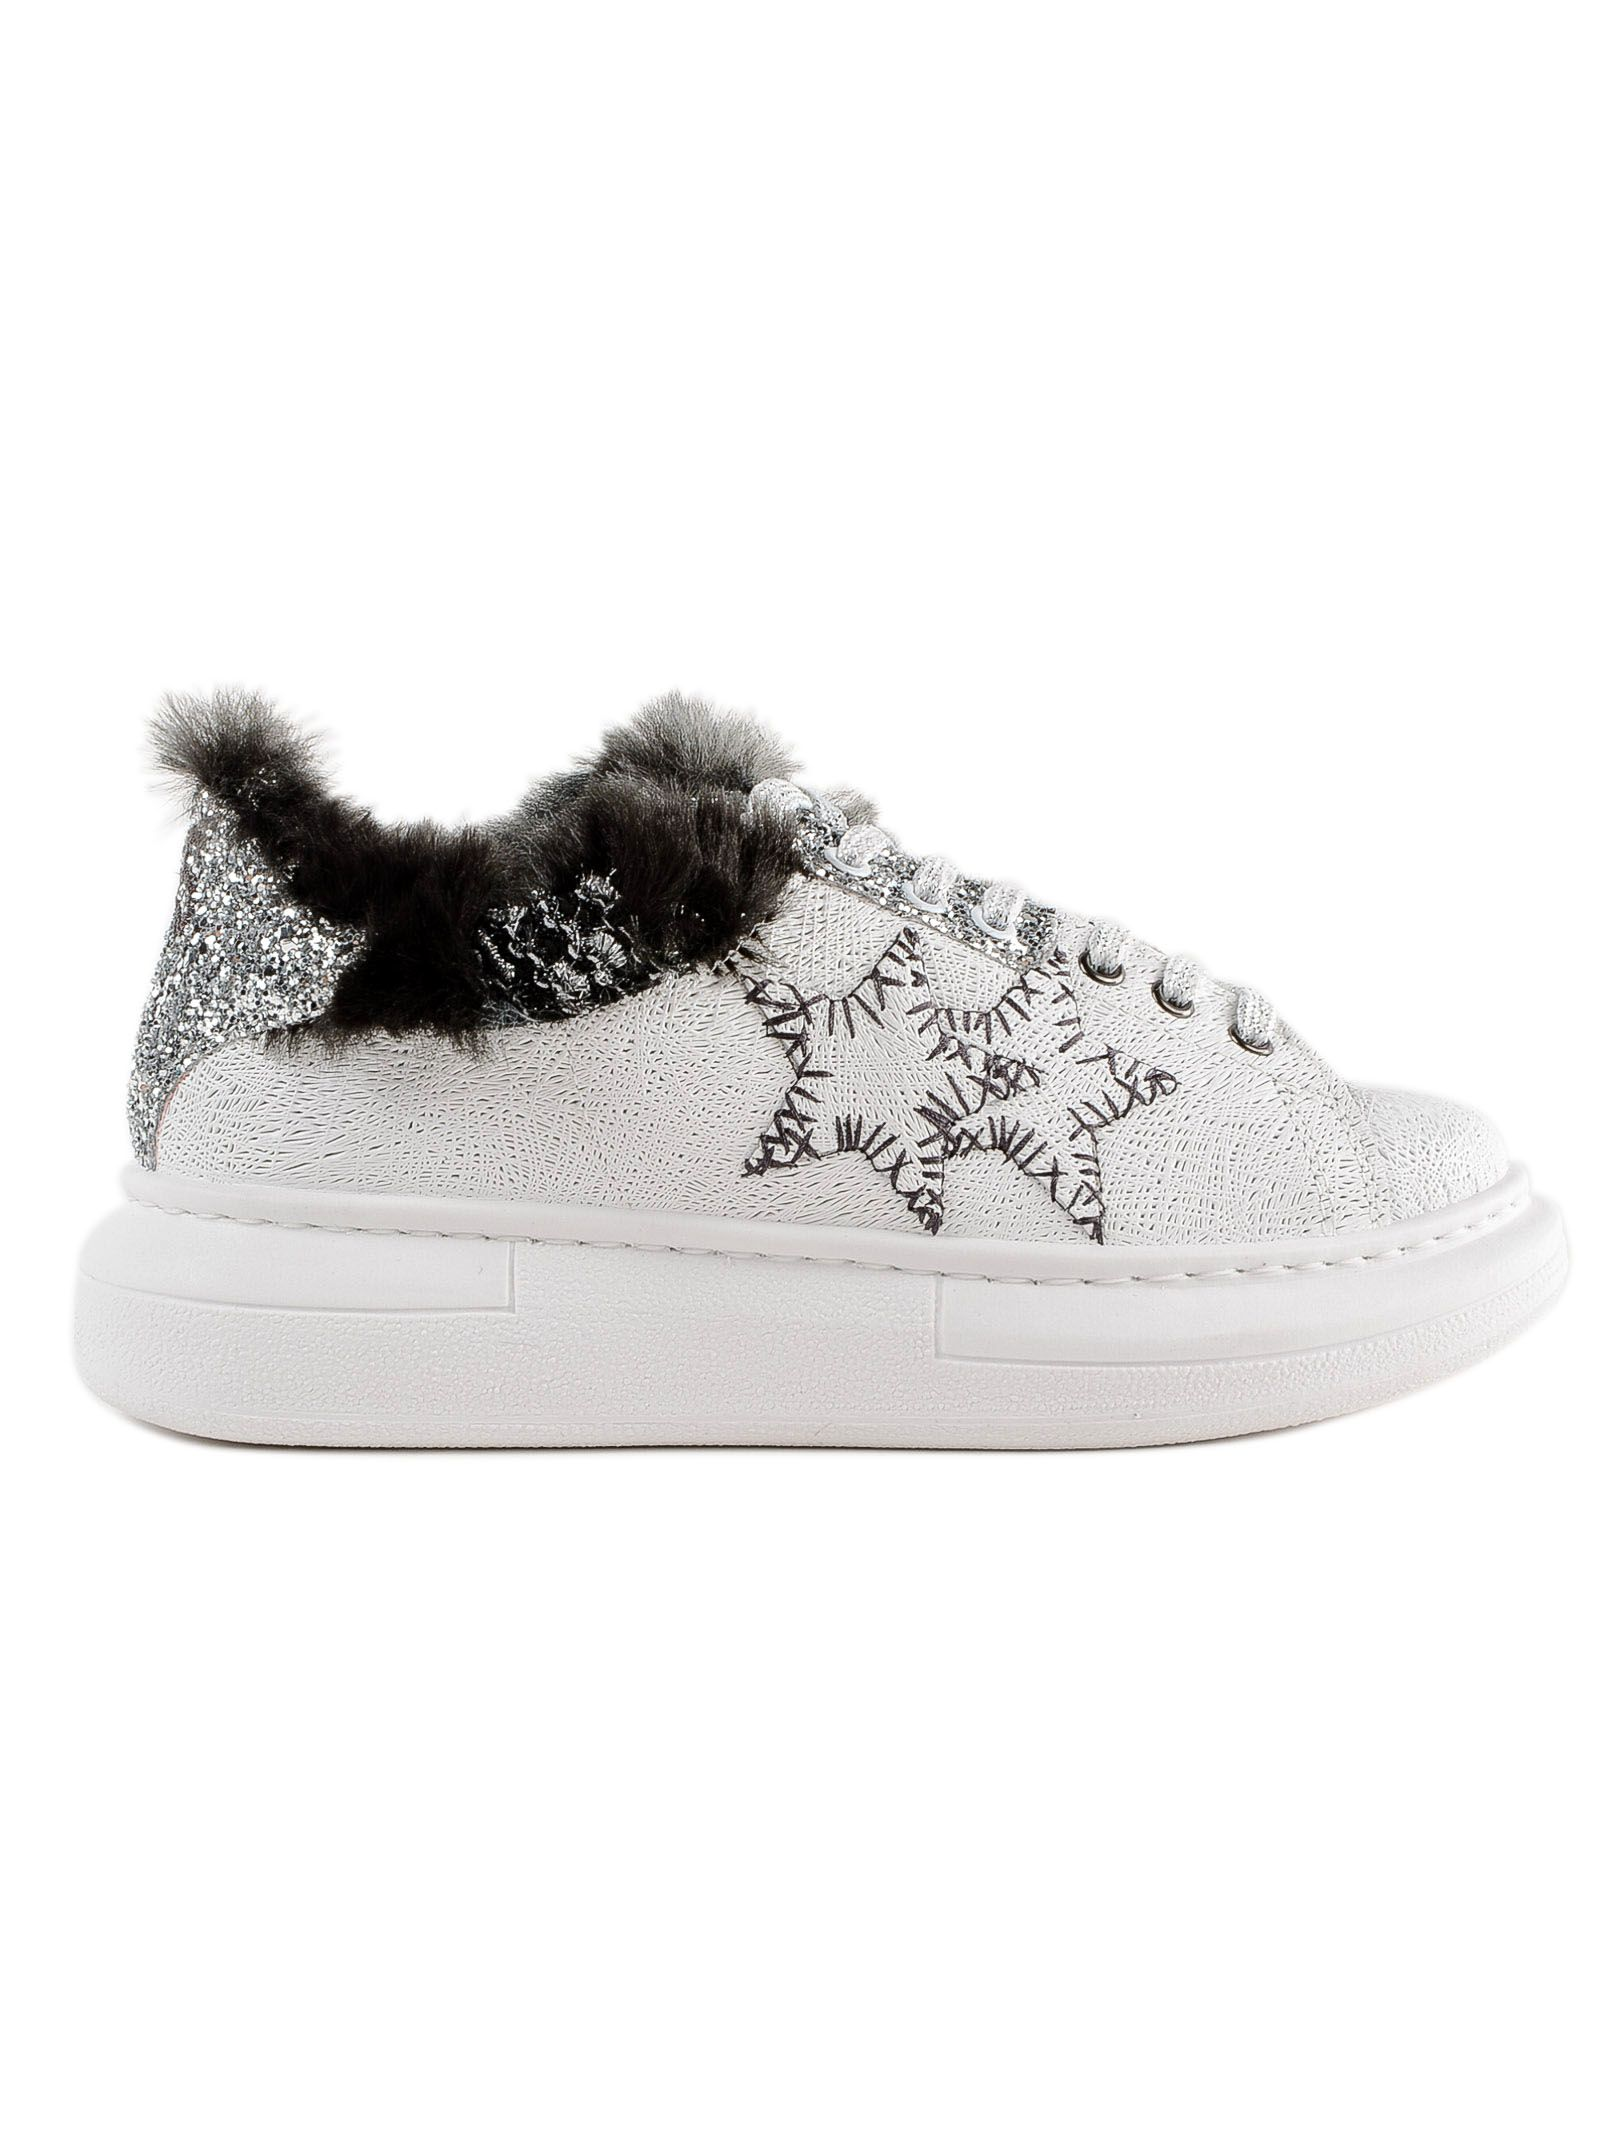 2STAR 2 Star Fur And Glittered Sneakers in Bianco/Grigio